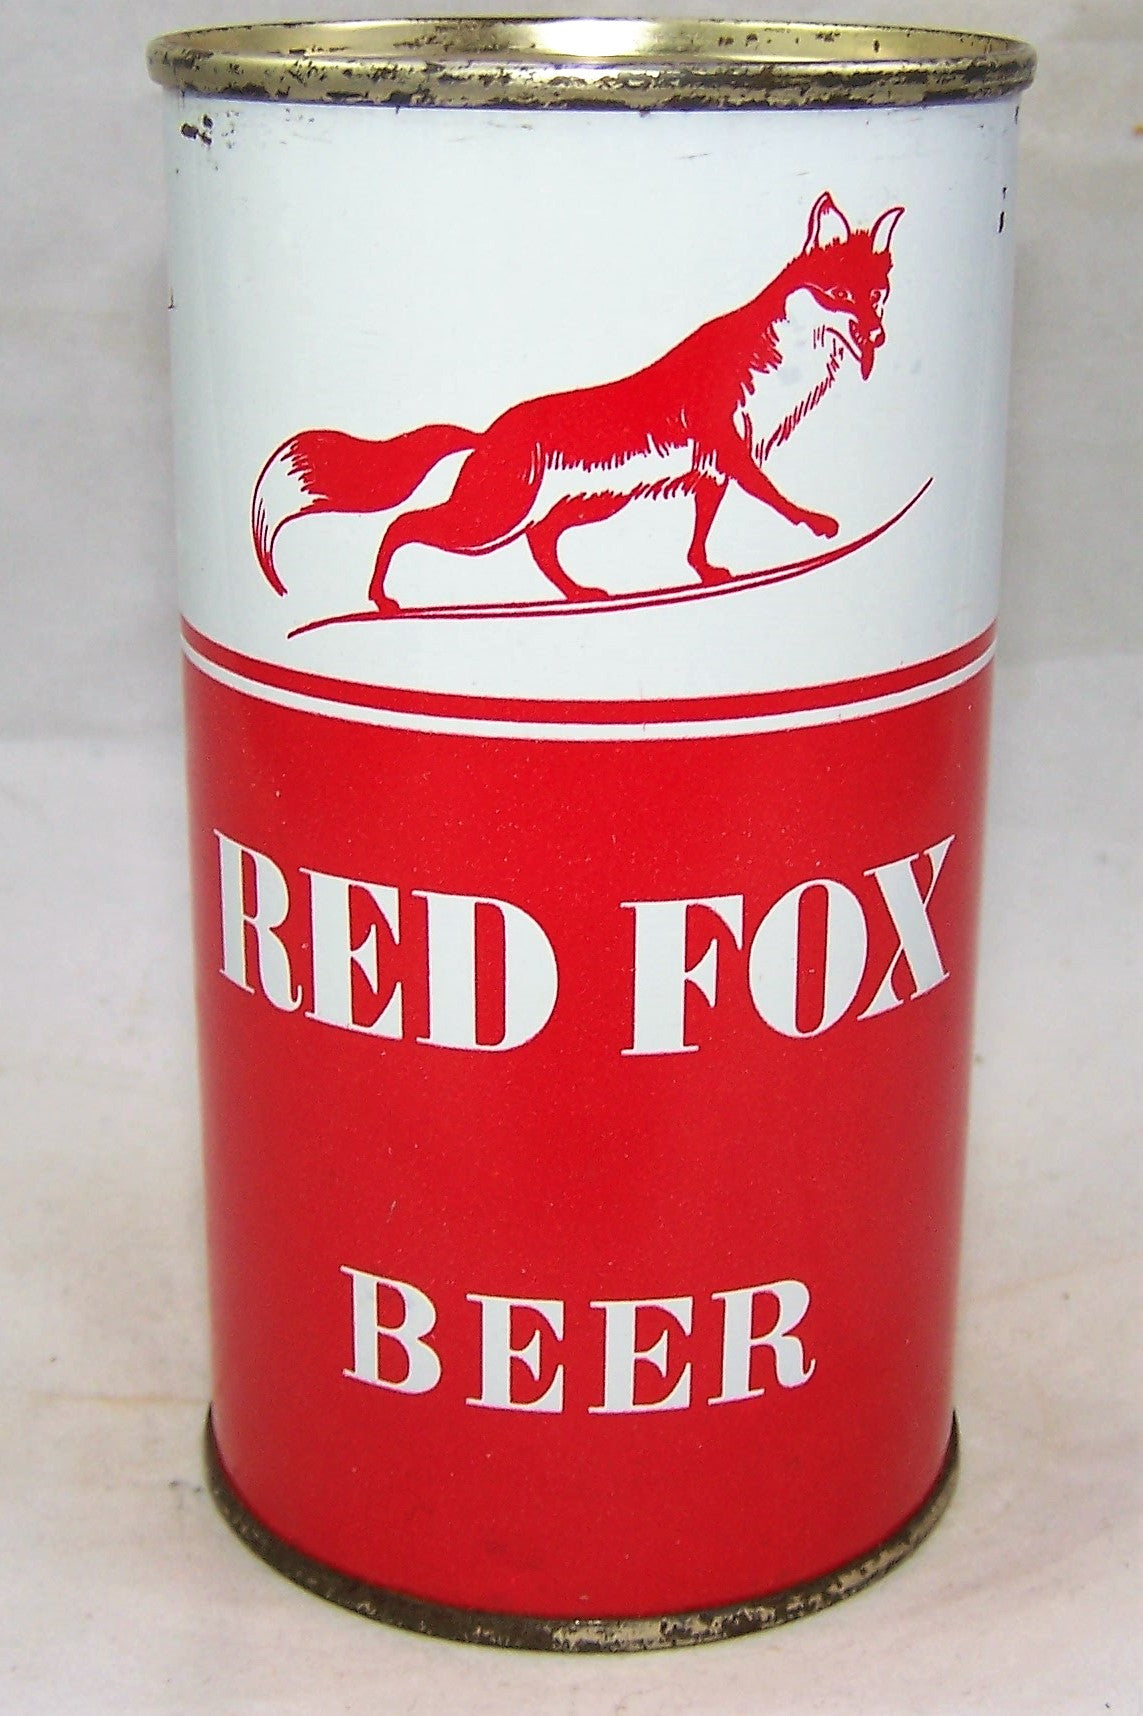 Red Fox Beer, USBC 119-22 (Cumberland) Grade 1